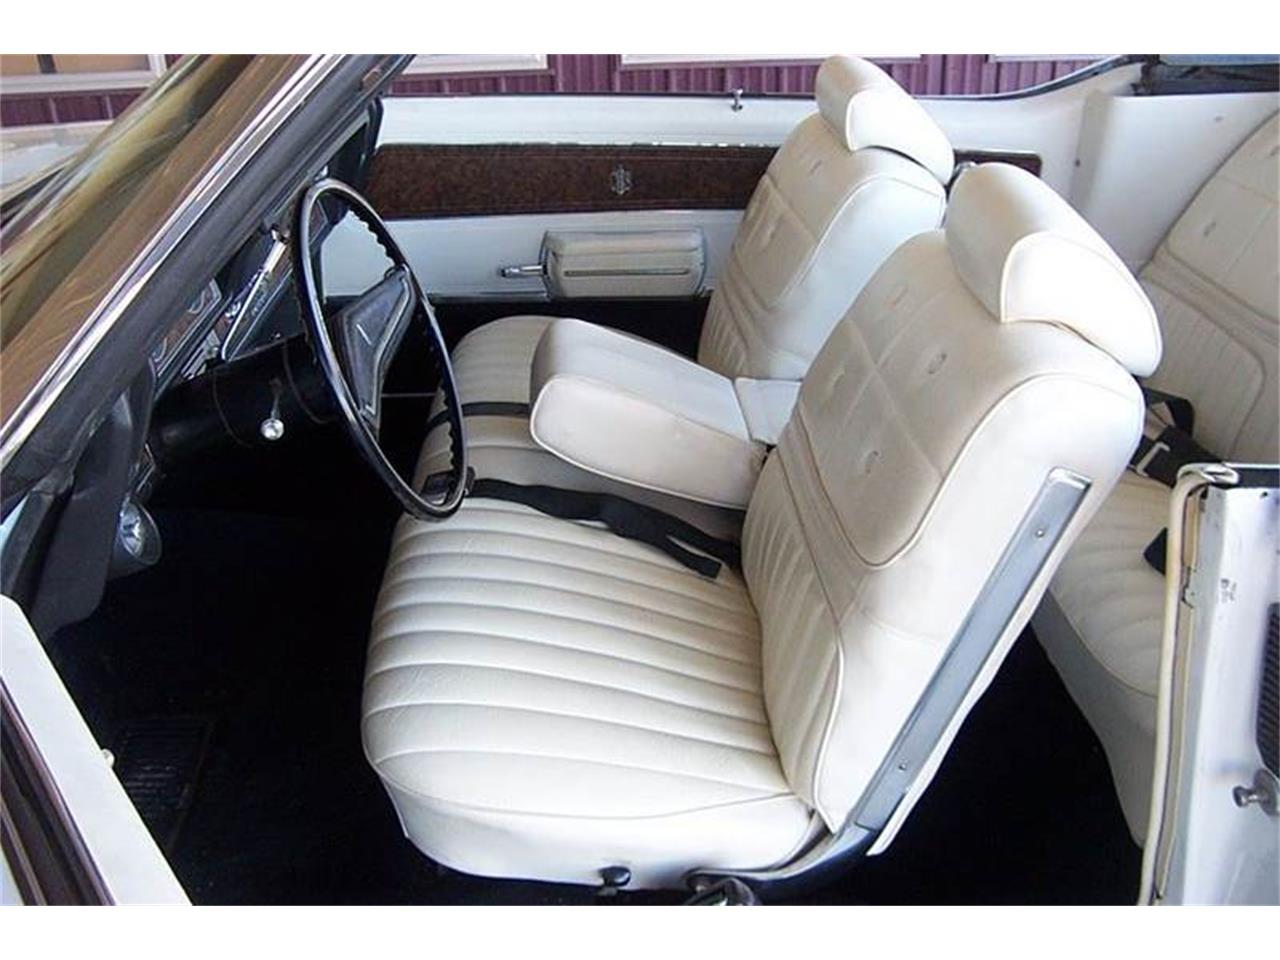 Large Picture of Classic 1970 Cutlass Supreme located in West Line Missouri - $19,900.00 Offered by Good Time Classics - OY7X